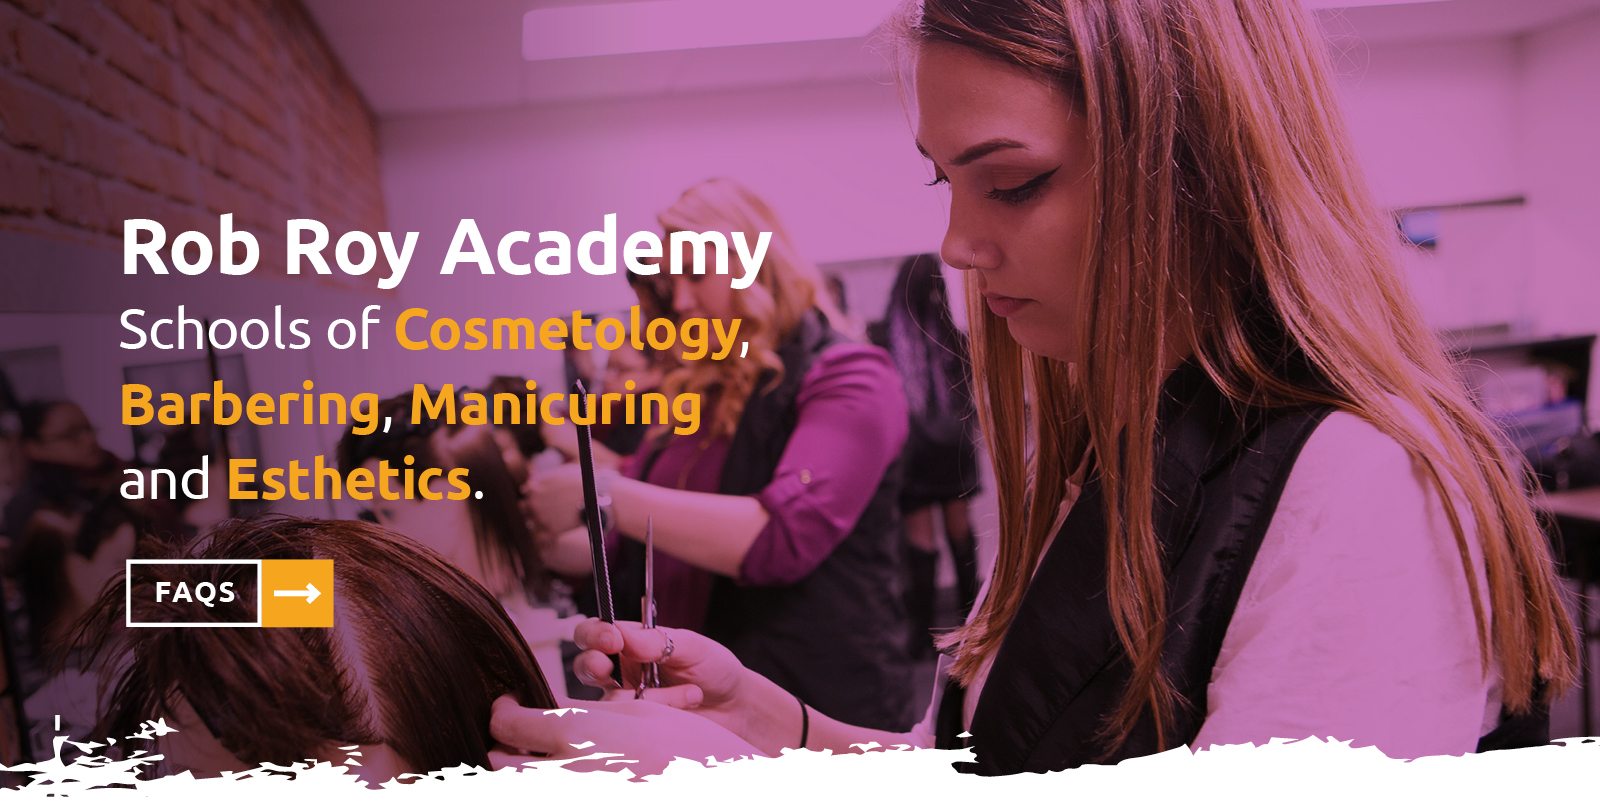 "Image of a young woman cutting hair at a salon with these words on top: ""Rob Roy Academy. School of Cosmetology, Barbering, Manicuring and Esthetics."""